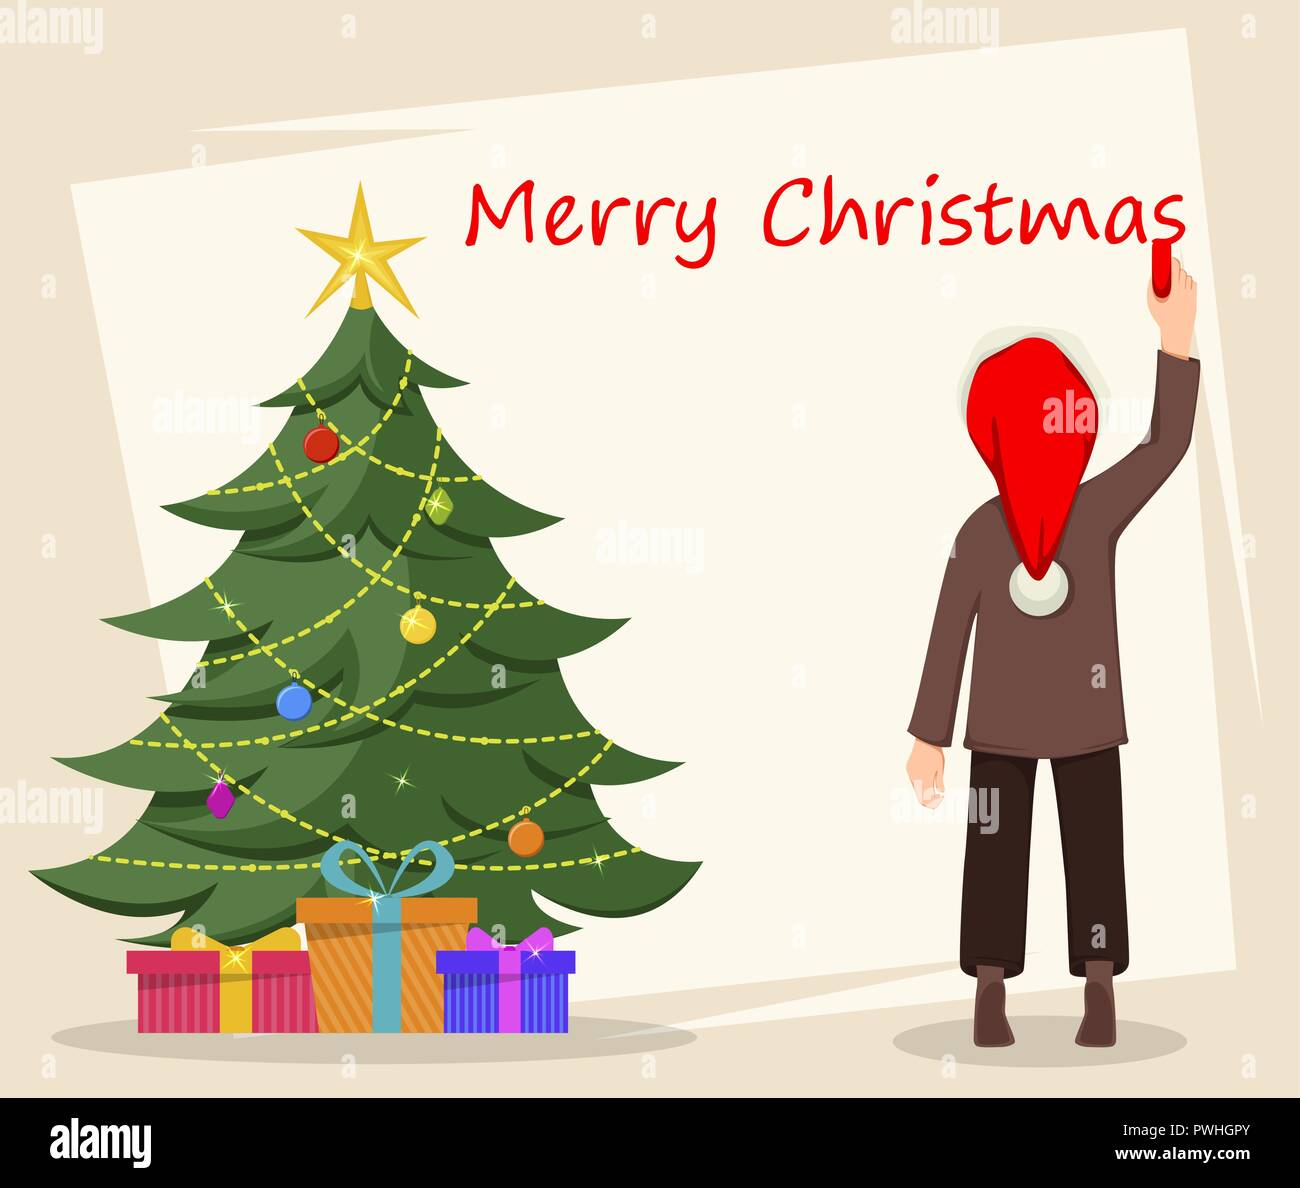 Merry Christmas Greeting Card With Kid Writing Greetings On The Wall